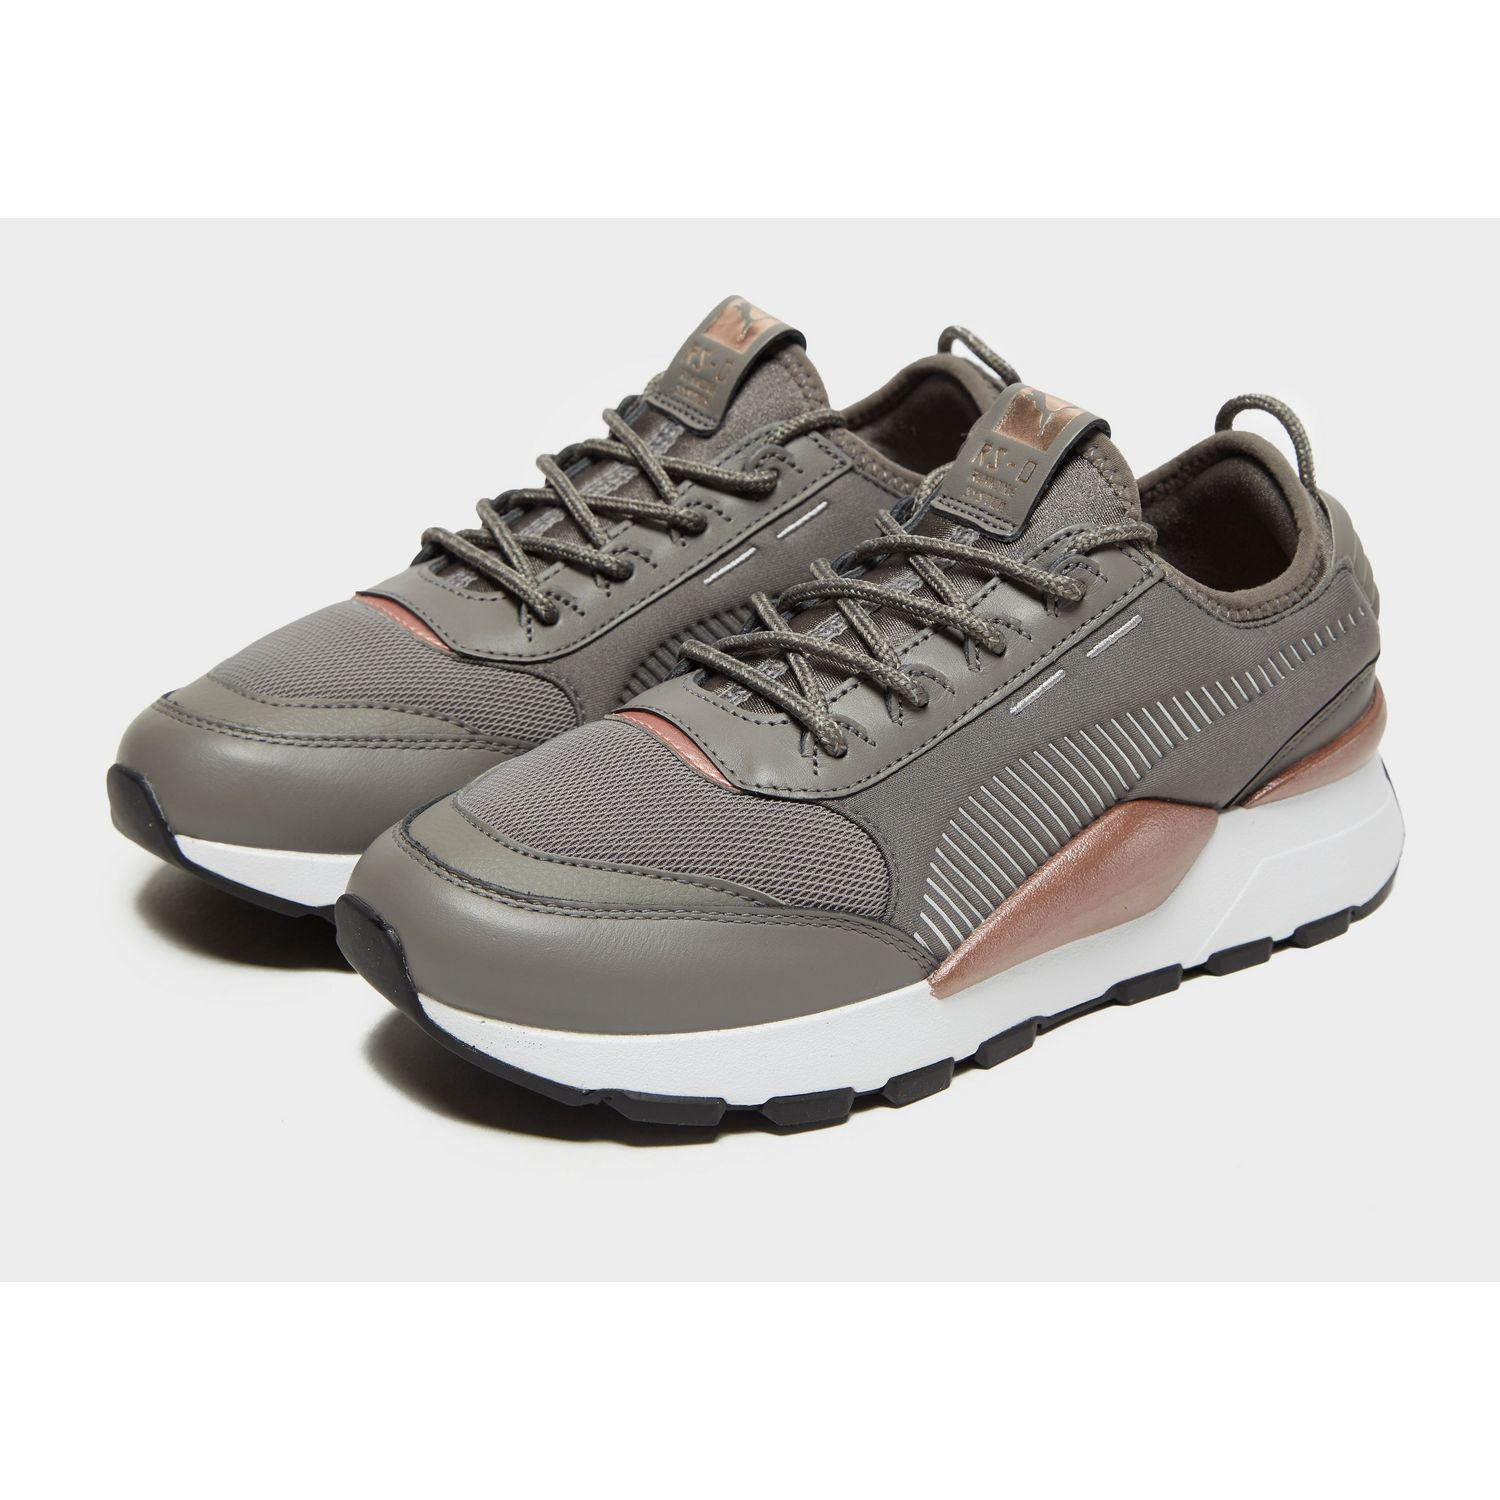 20cfd8d1ce4 PUMA Rs-0 Trophy in Gray - Lyst